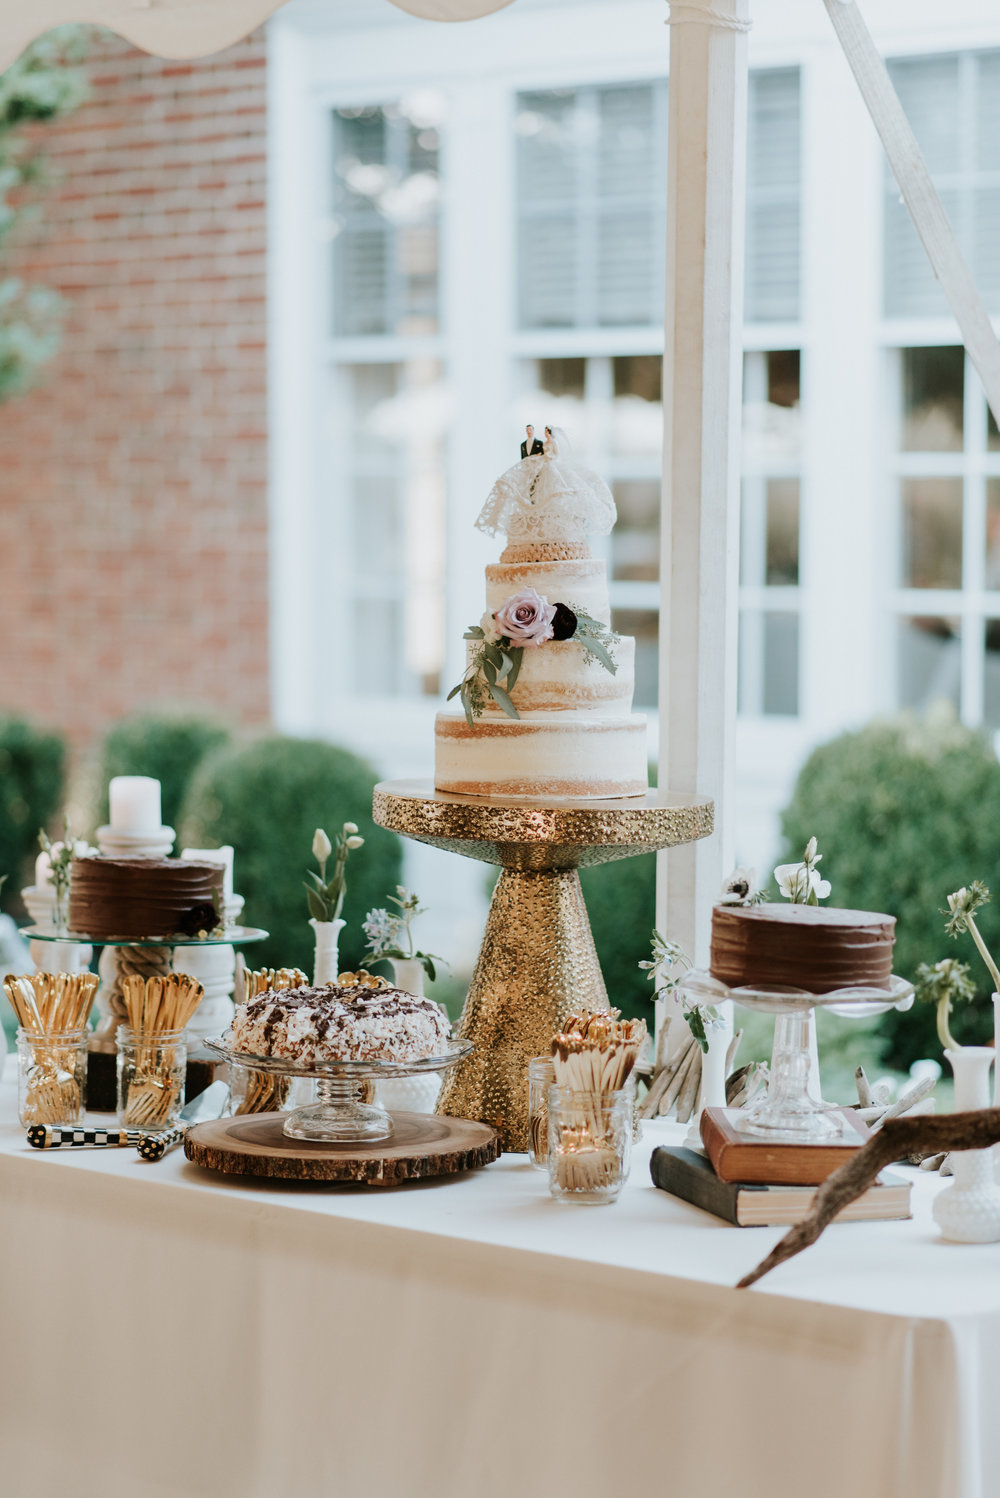 Rustic Oyster Themed Eastern Shore Maryland Outdoor Wedding by East Made Event Company Wedding Planner and Bekah Kay Creative965.jpg